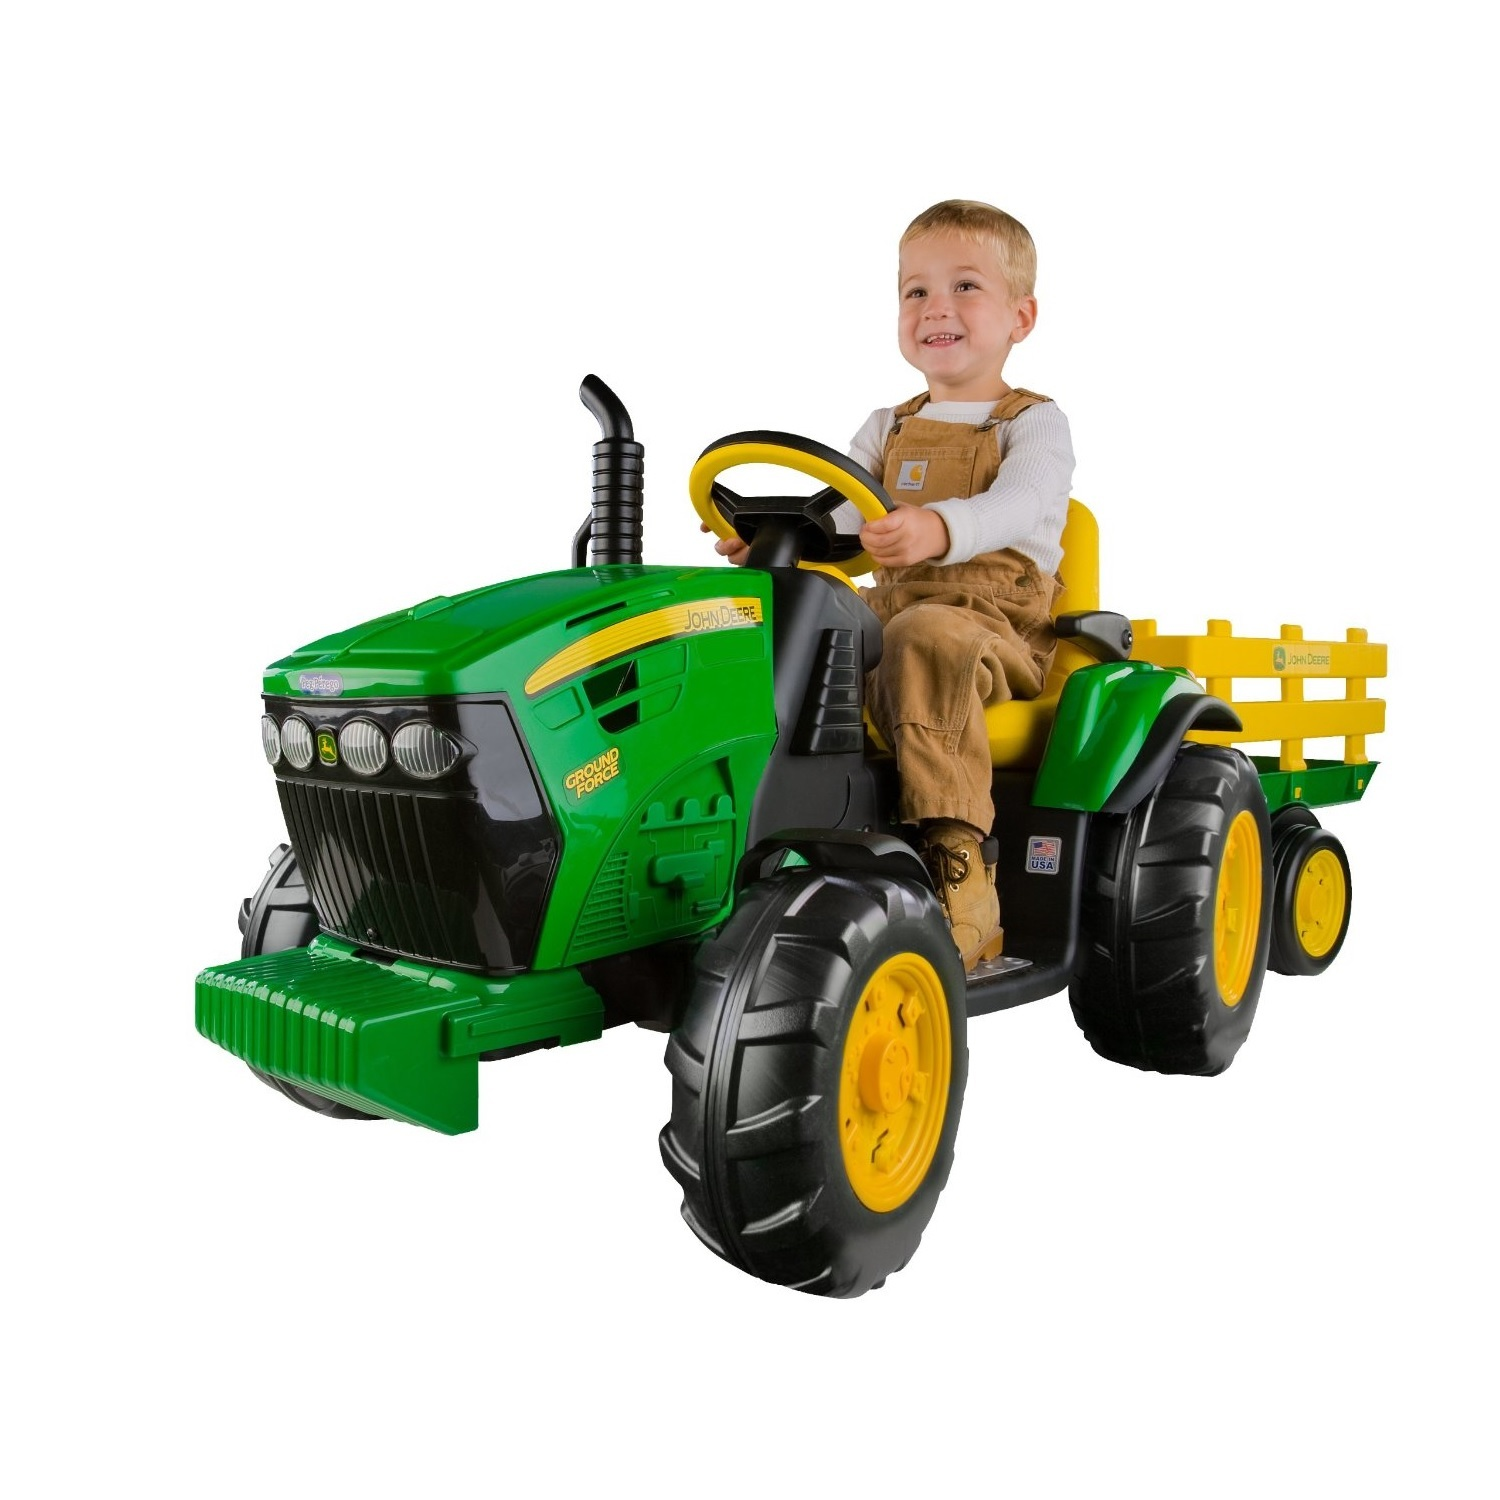 Toddler Riding Toys : Battery powered tractor kids ride on trailer farm wheels